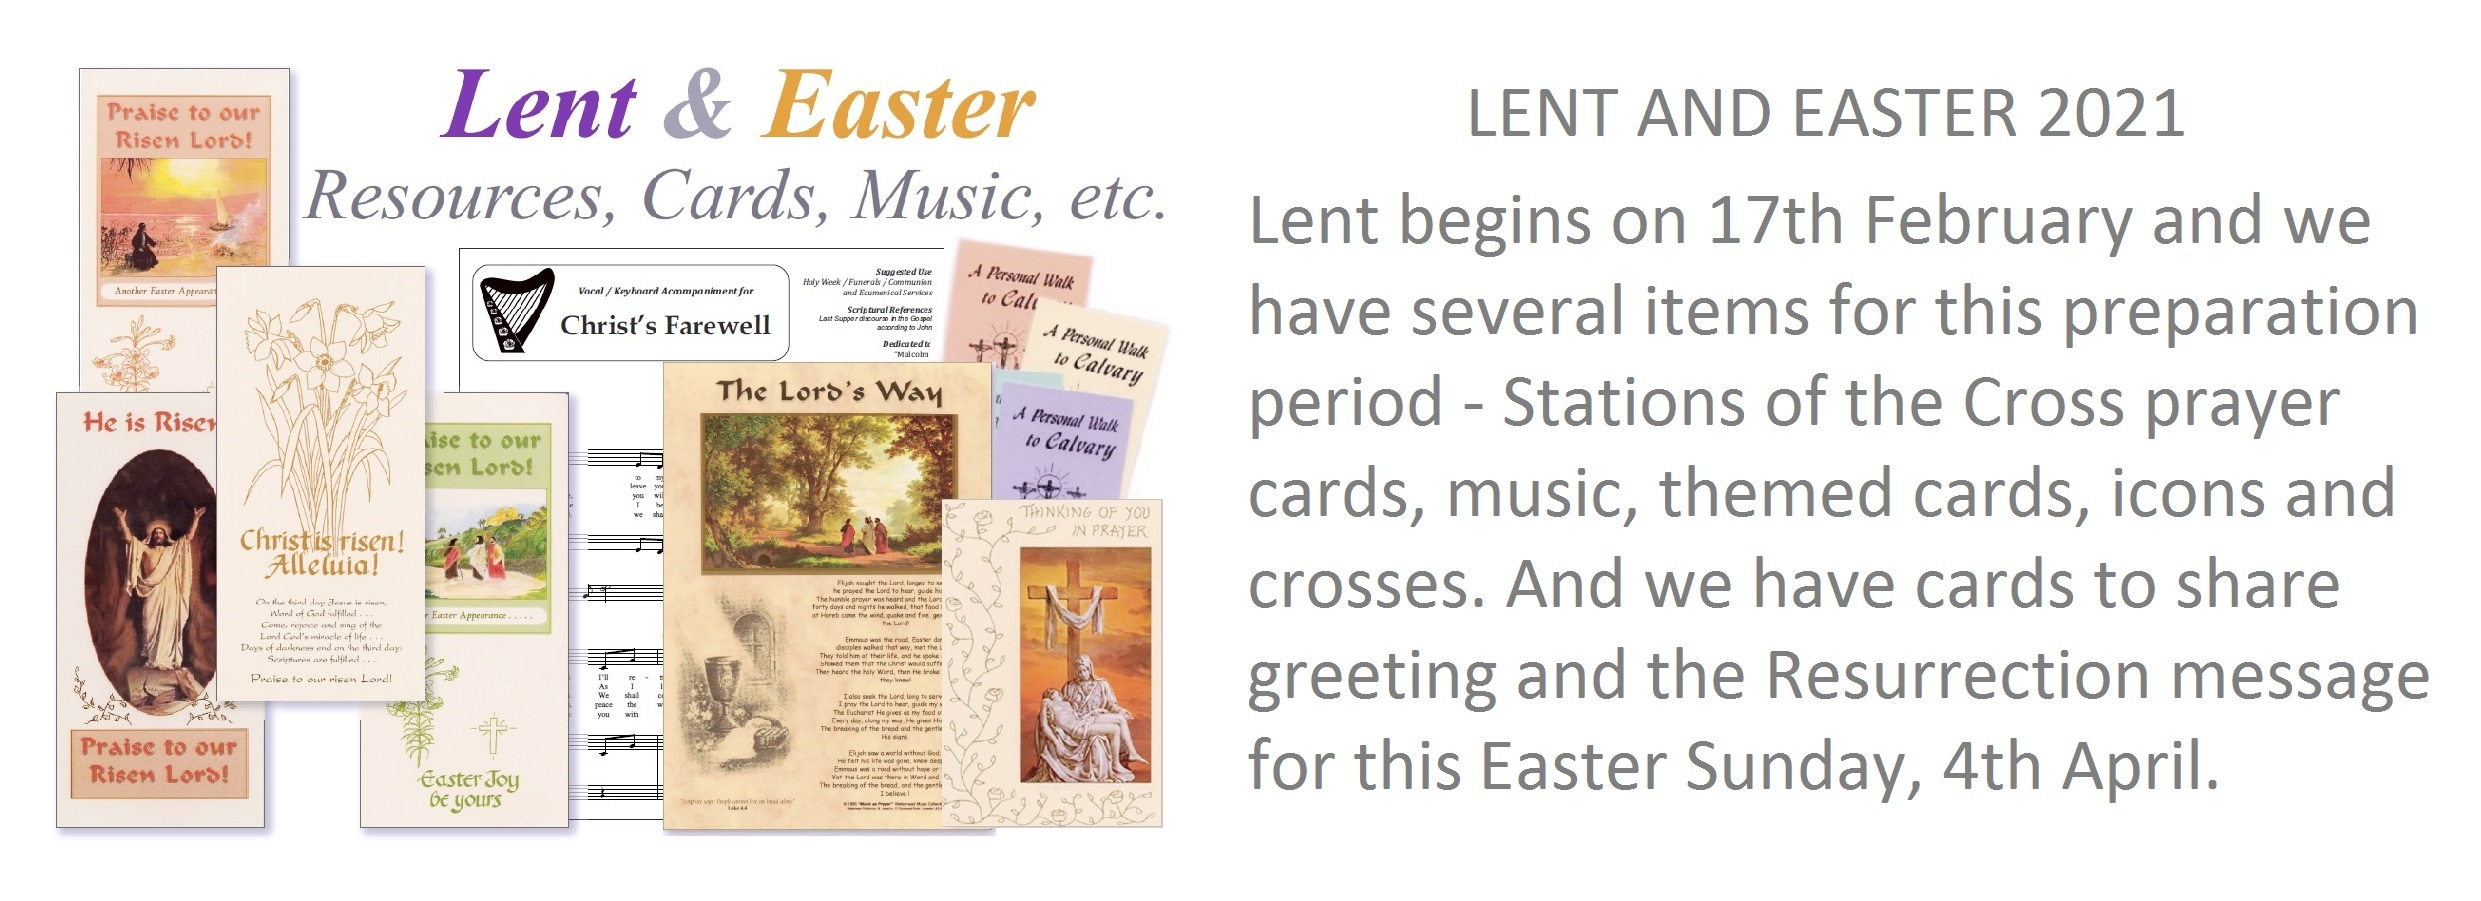 Lent and Easter Card and Resources